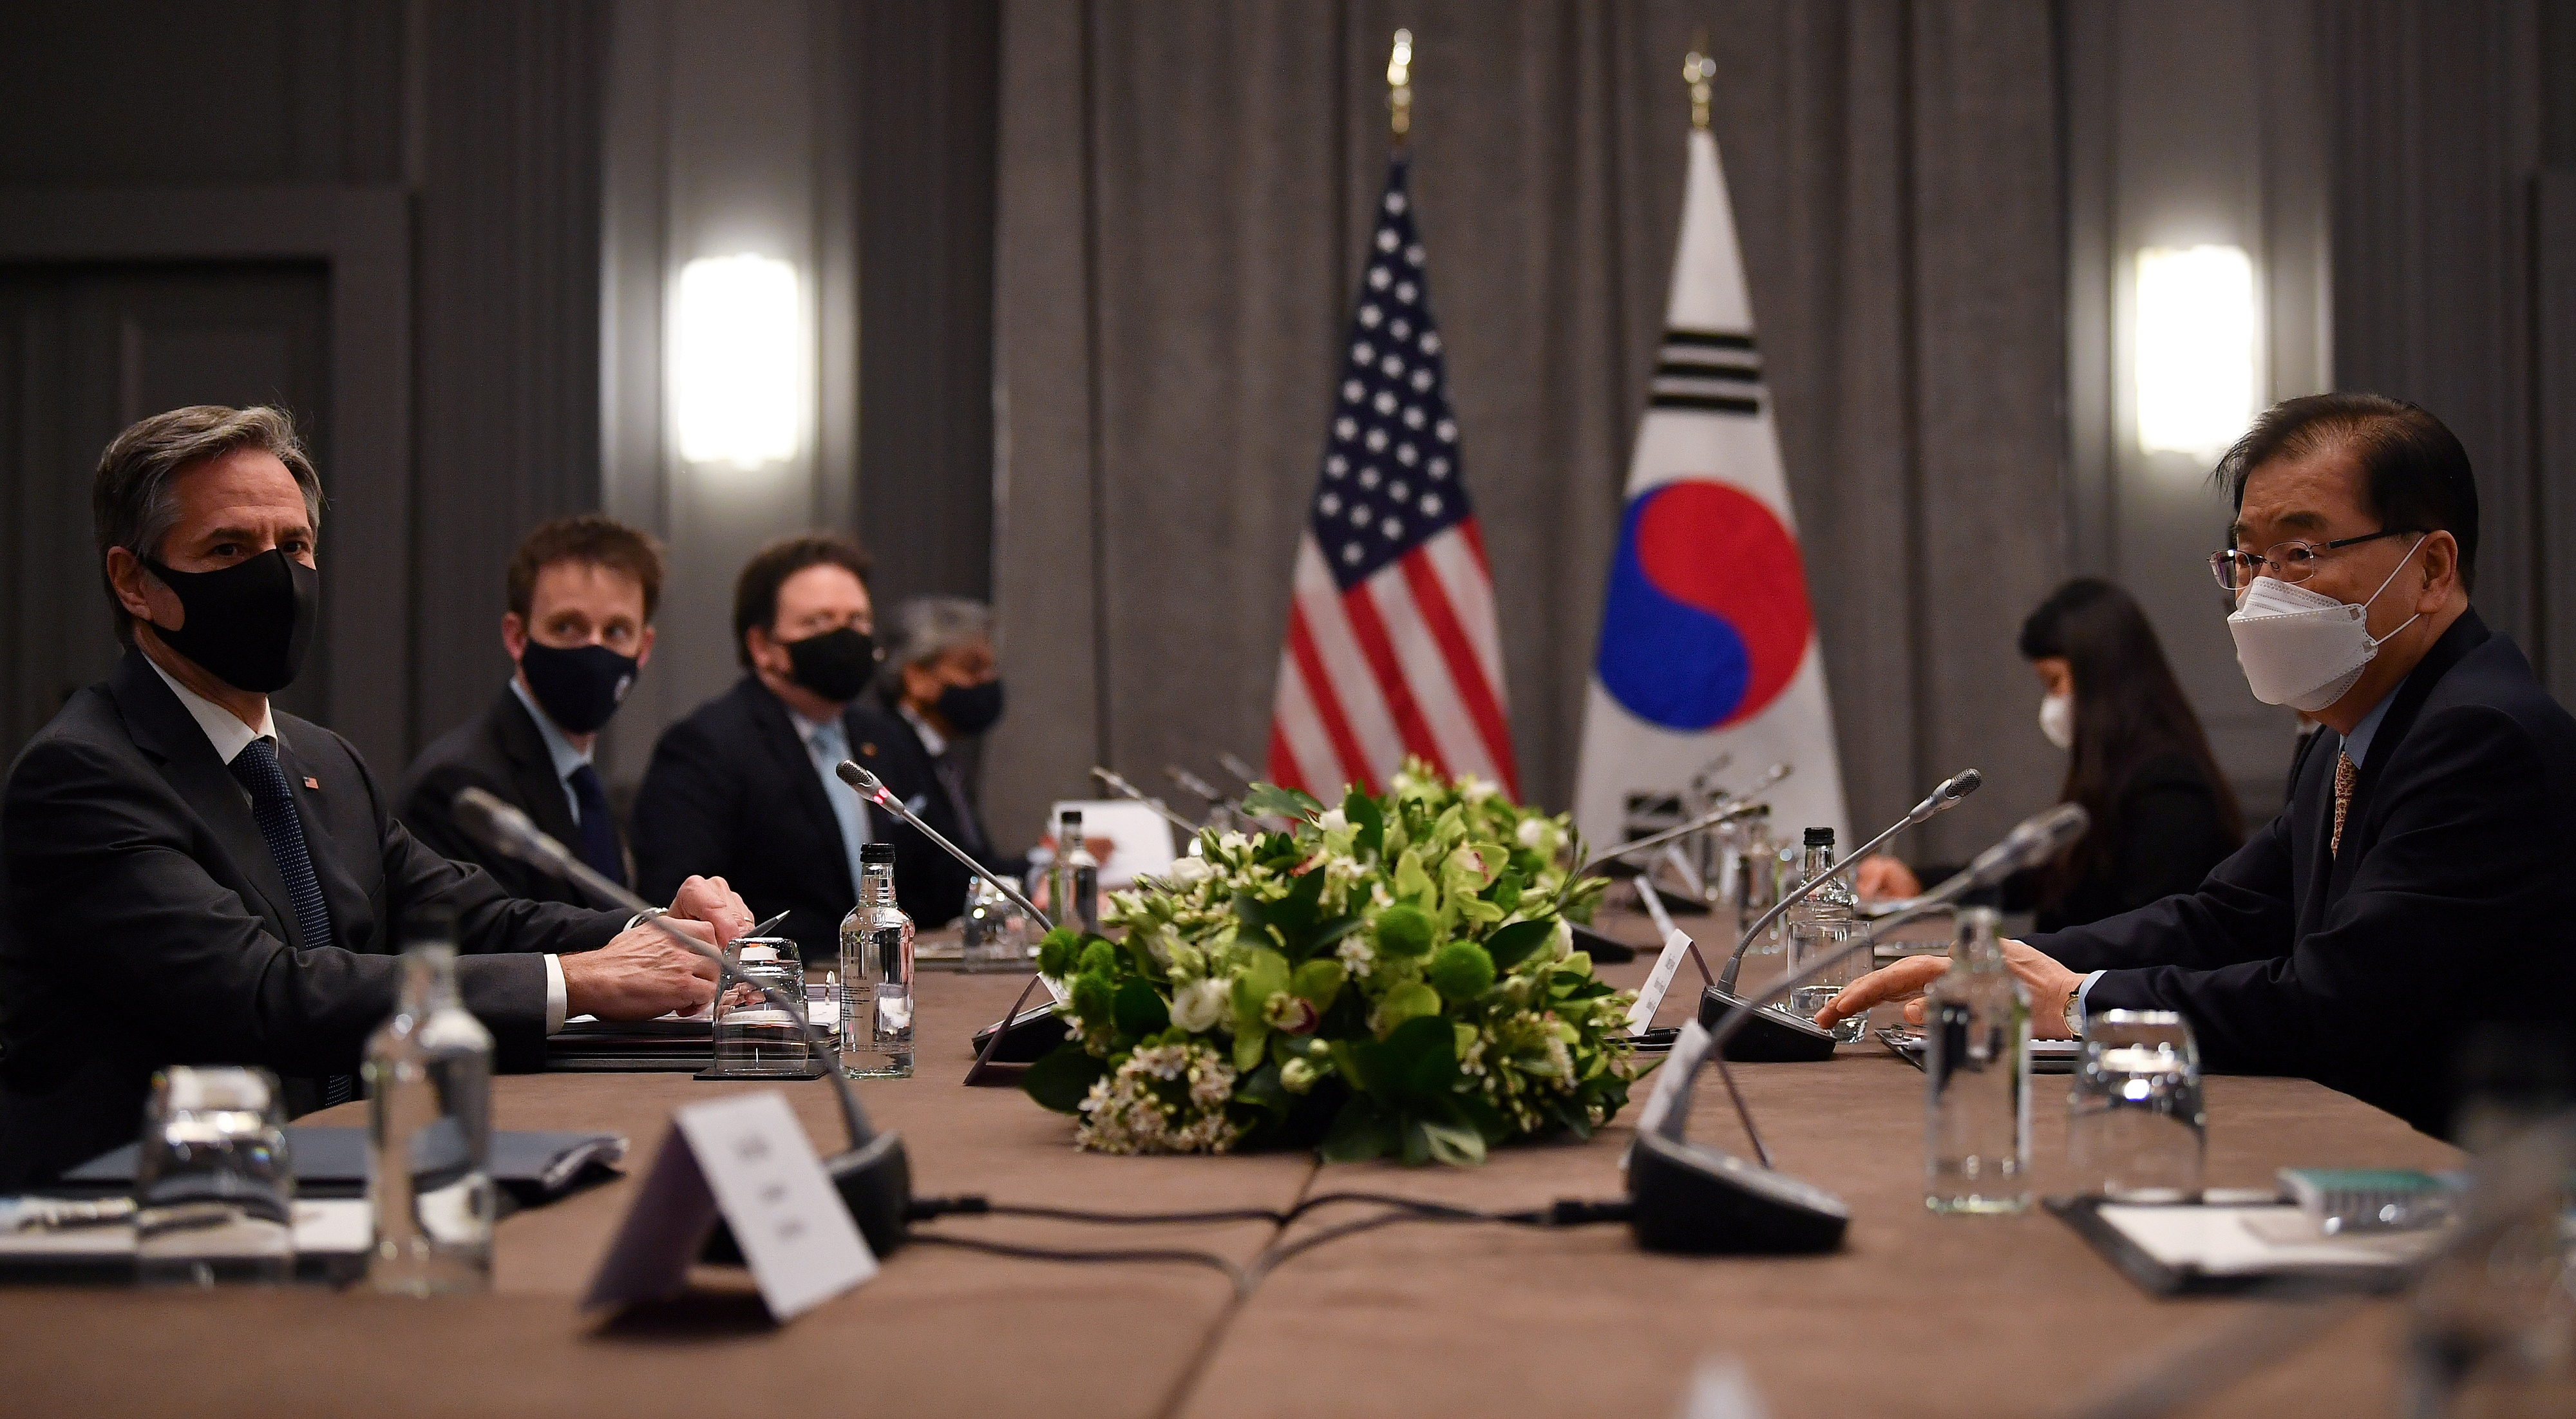 U.S. Secretary of State Antony Blinken speaks with South Korea's Foreign Minister Chung Eui-yong during a bilateral meeting as part of the G7 foreign ministers meeting, in London, Britain May 3, 2021. Ben Stansall/Pool via REUTERS